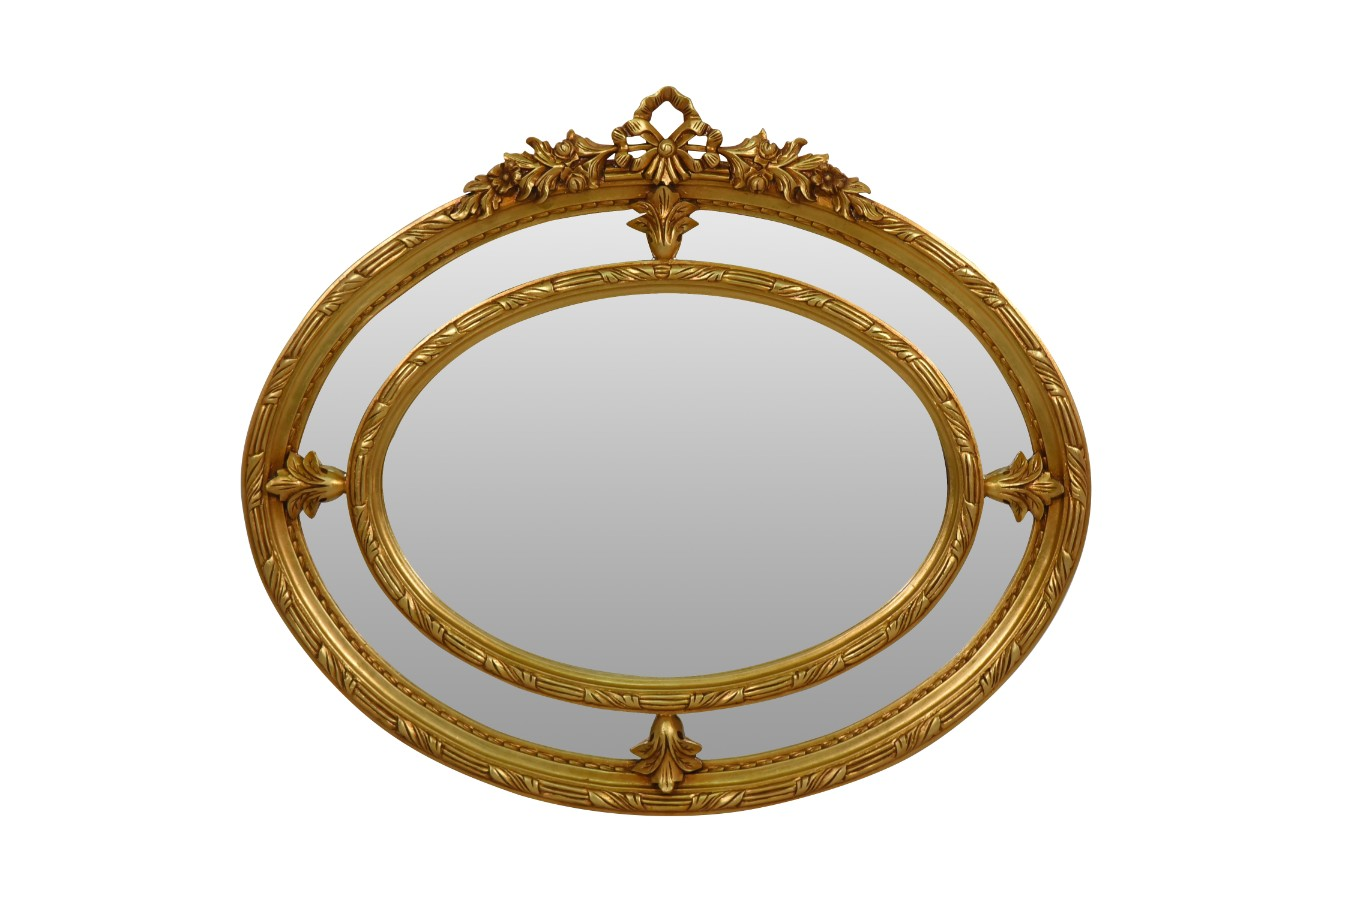 Chèvrefeuille Giltwood Mirror